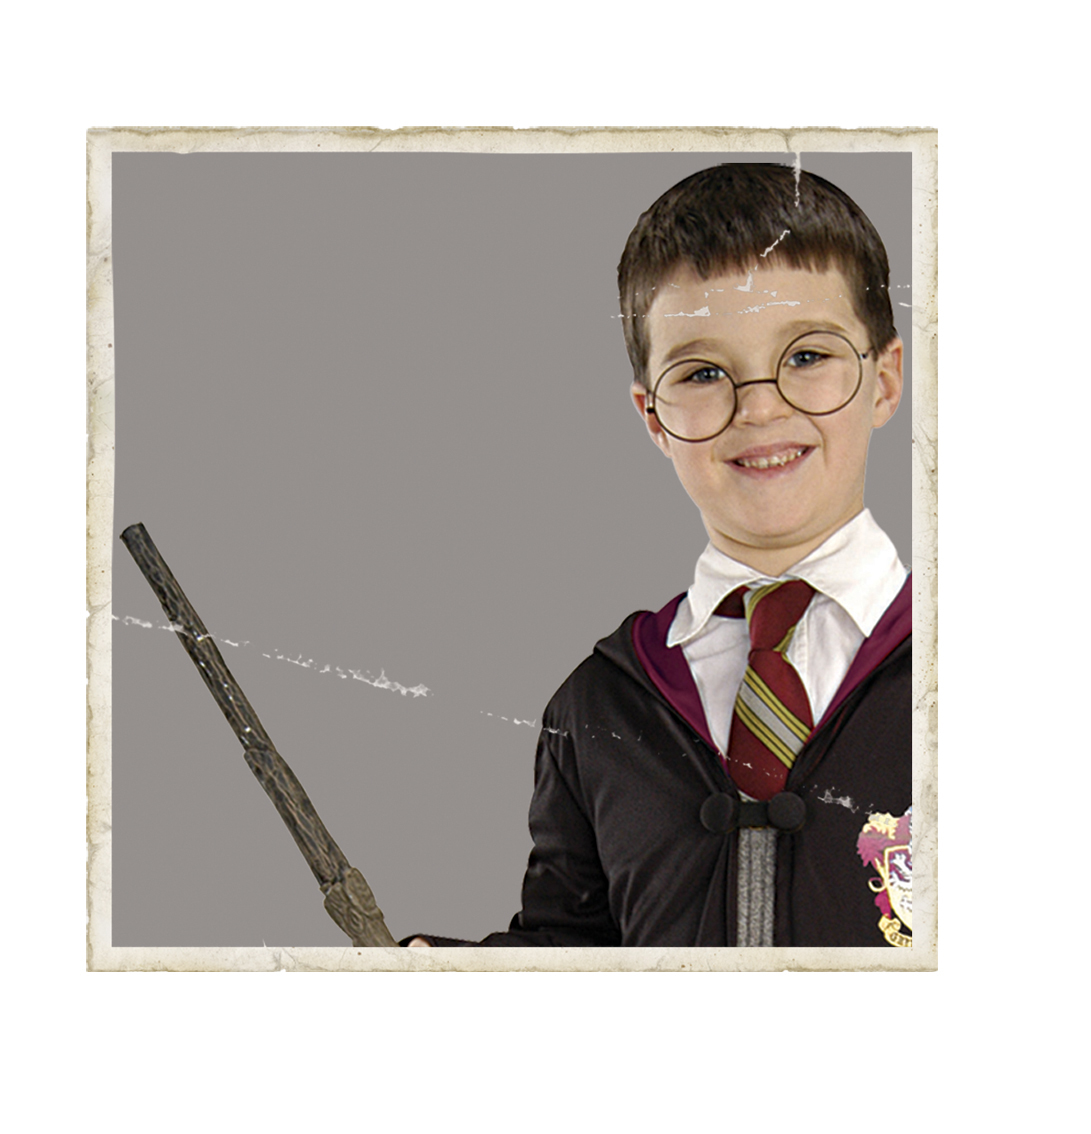 Harry Potter glasses and wand set 5374